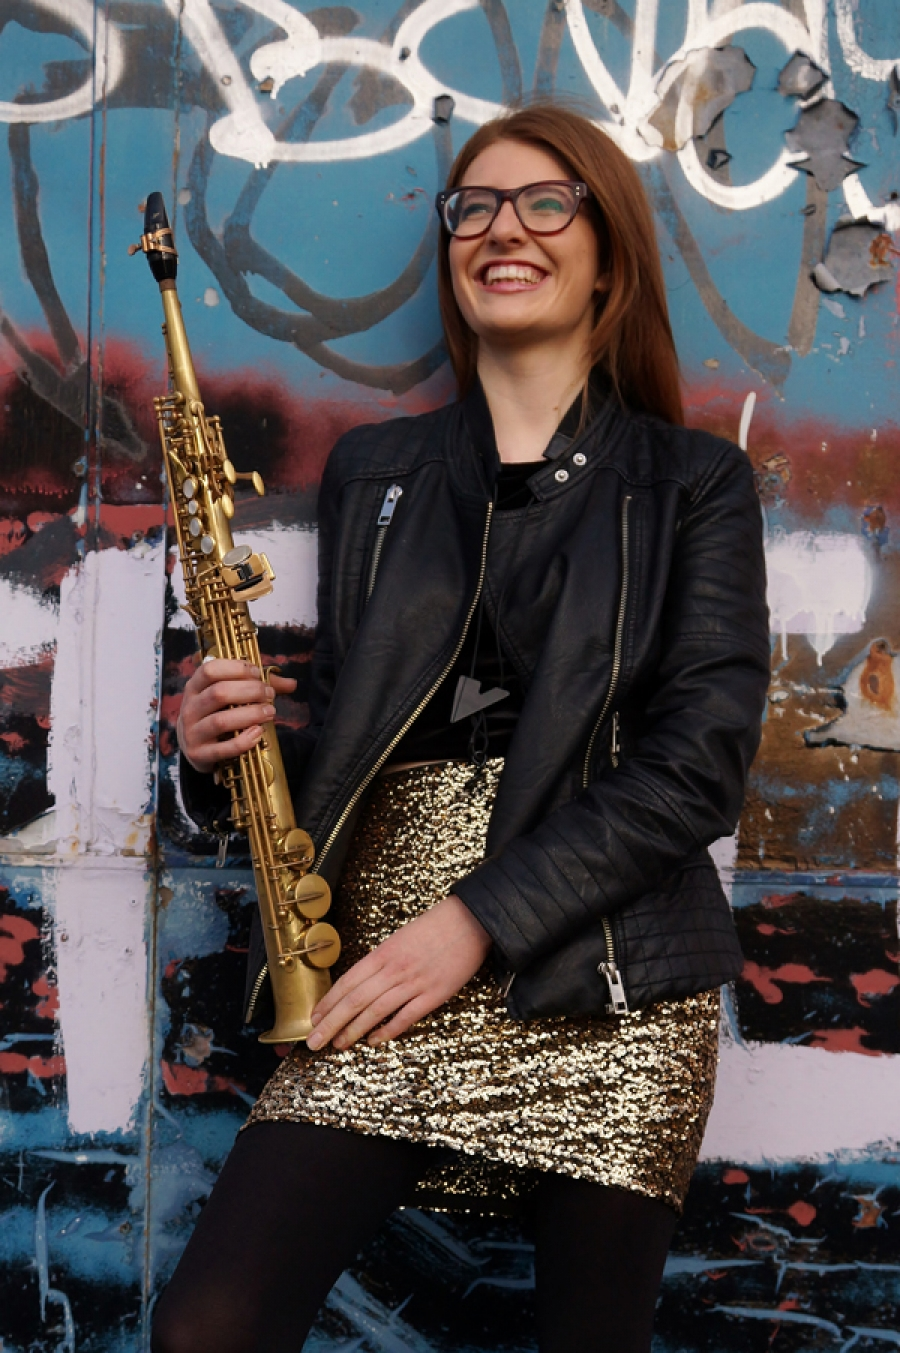 Jess Gillam shines in BBC Young Musician final